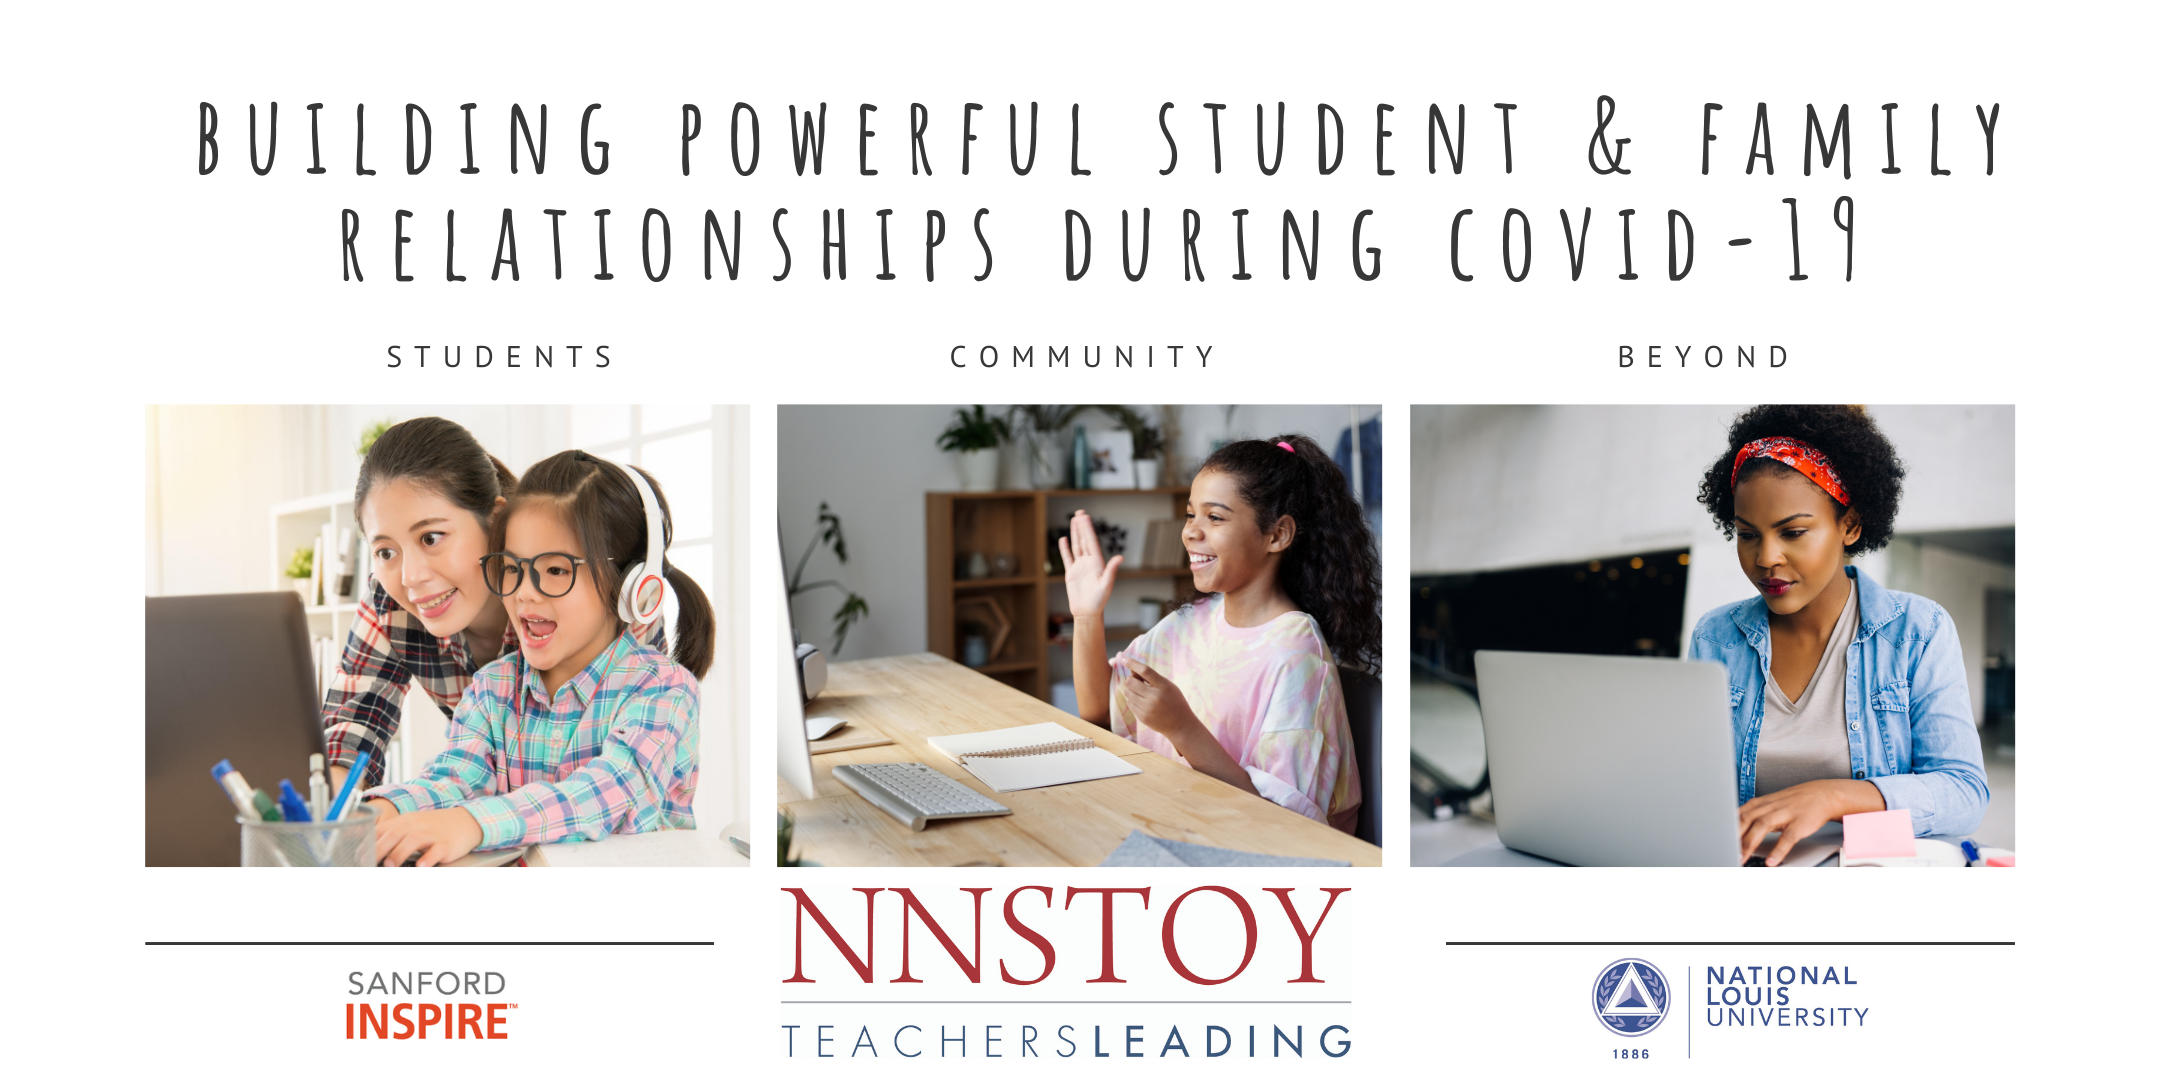 Building Powerful Student & Family Relationships During Covid-19